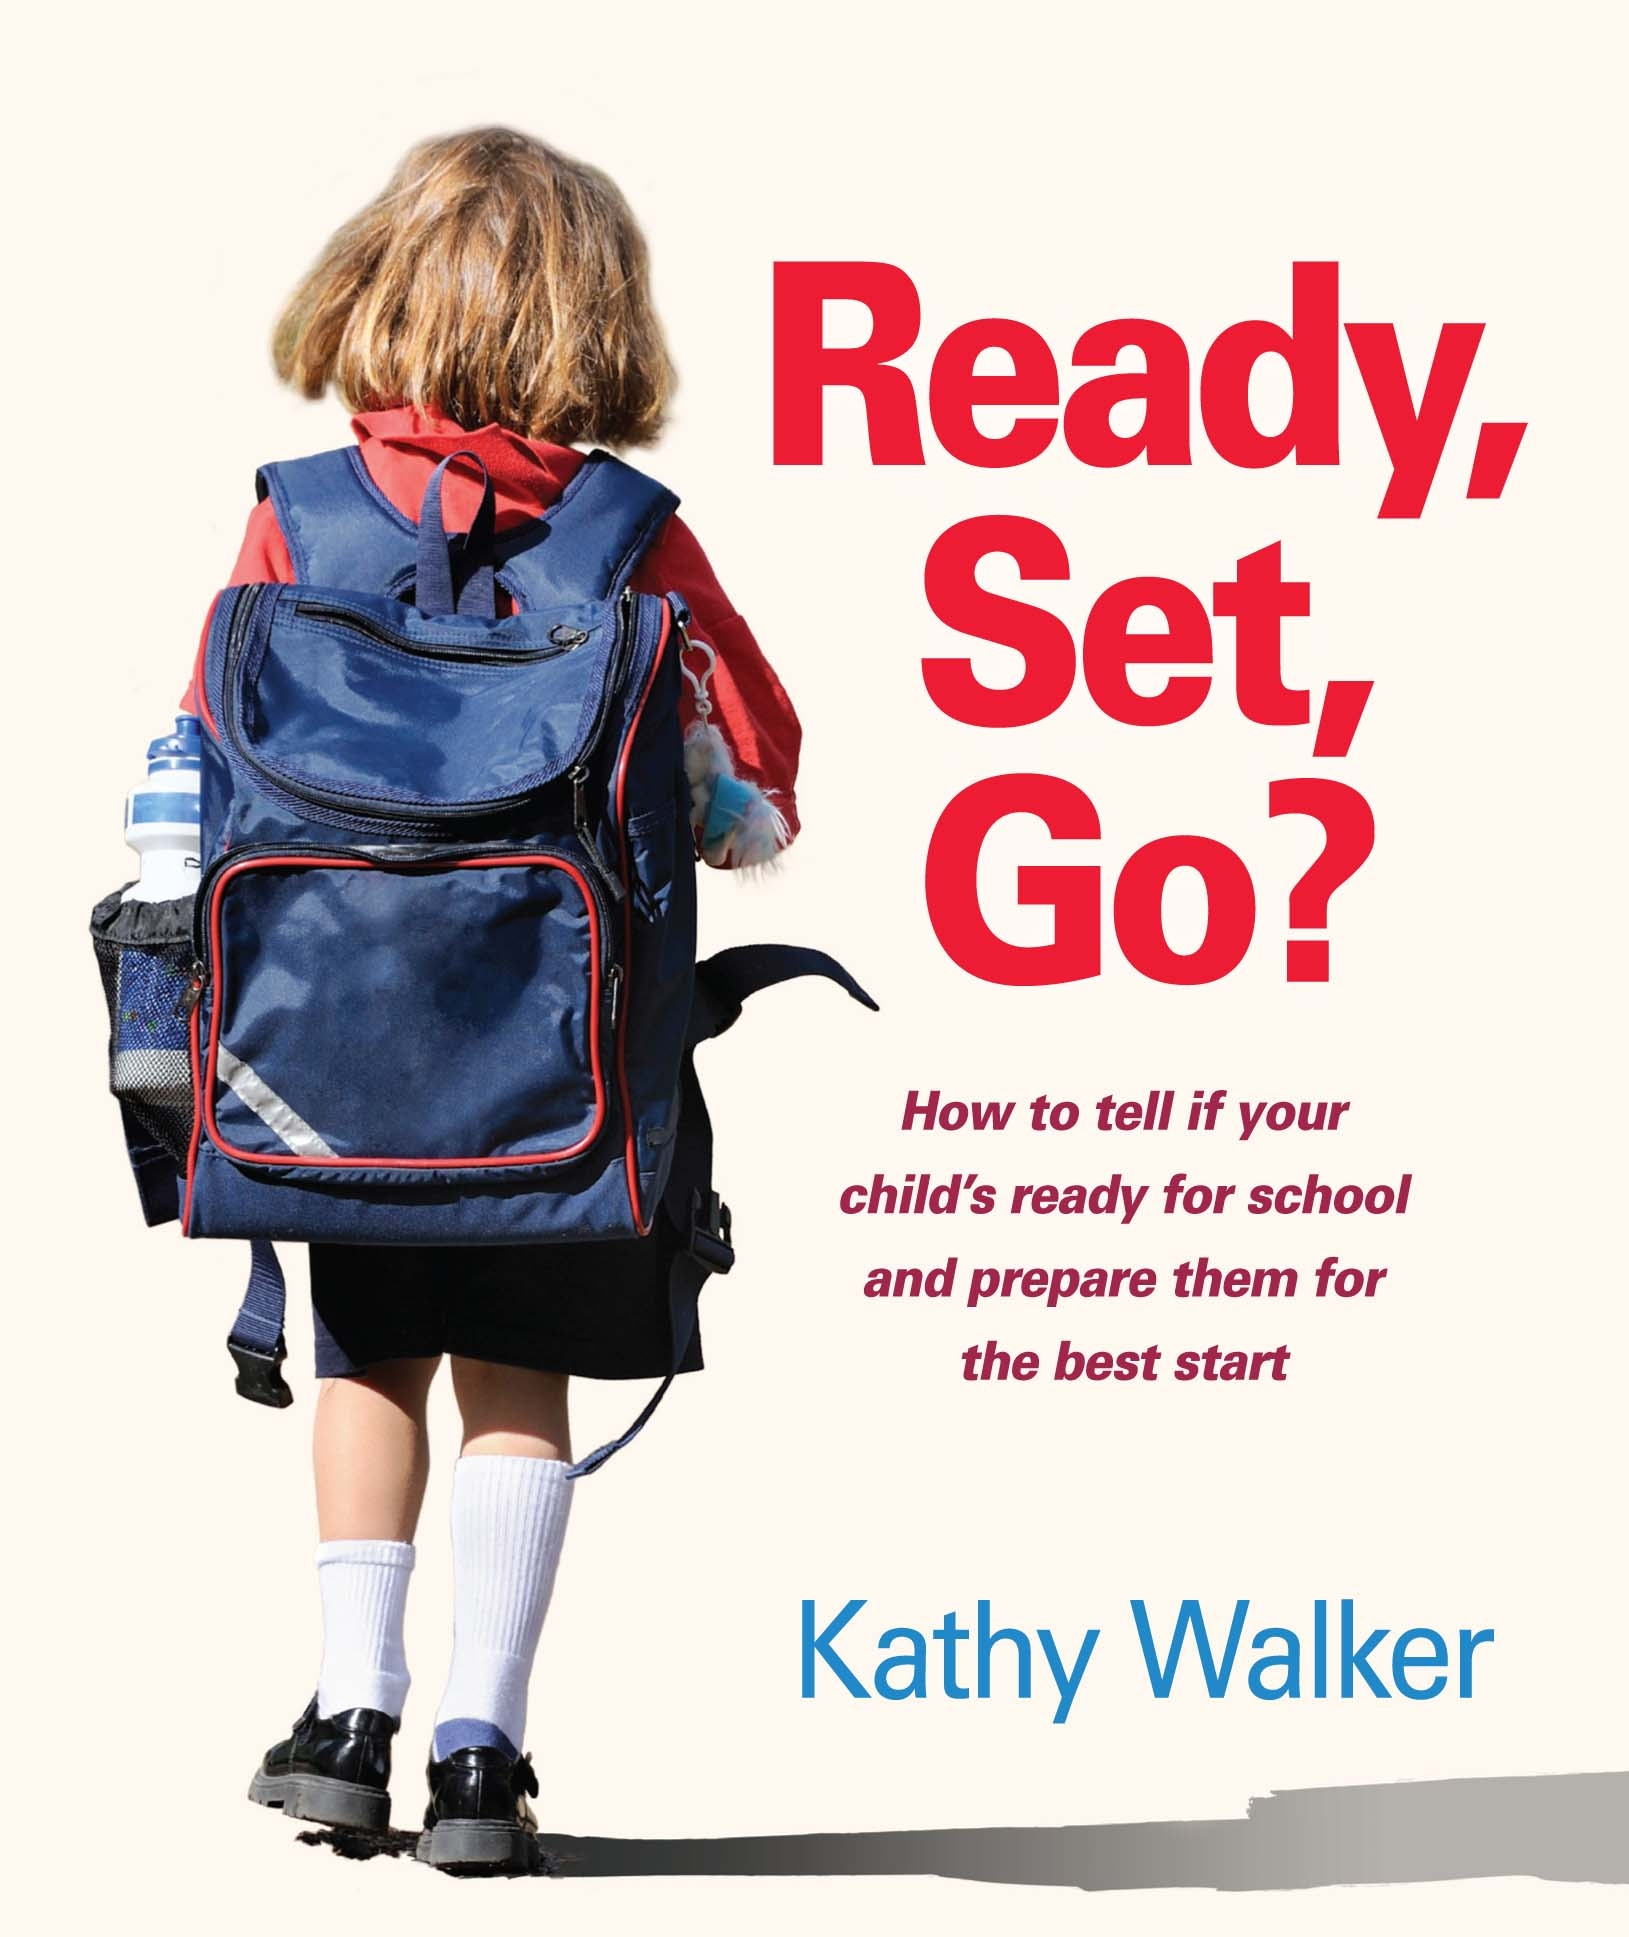 And your child is ready to go to school: a test for biological age 42